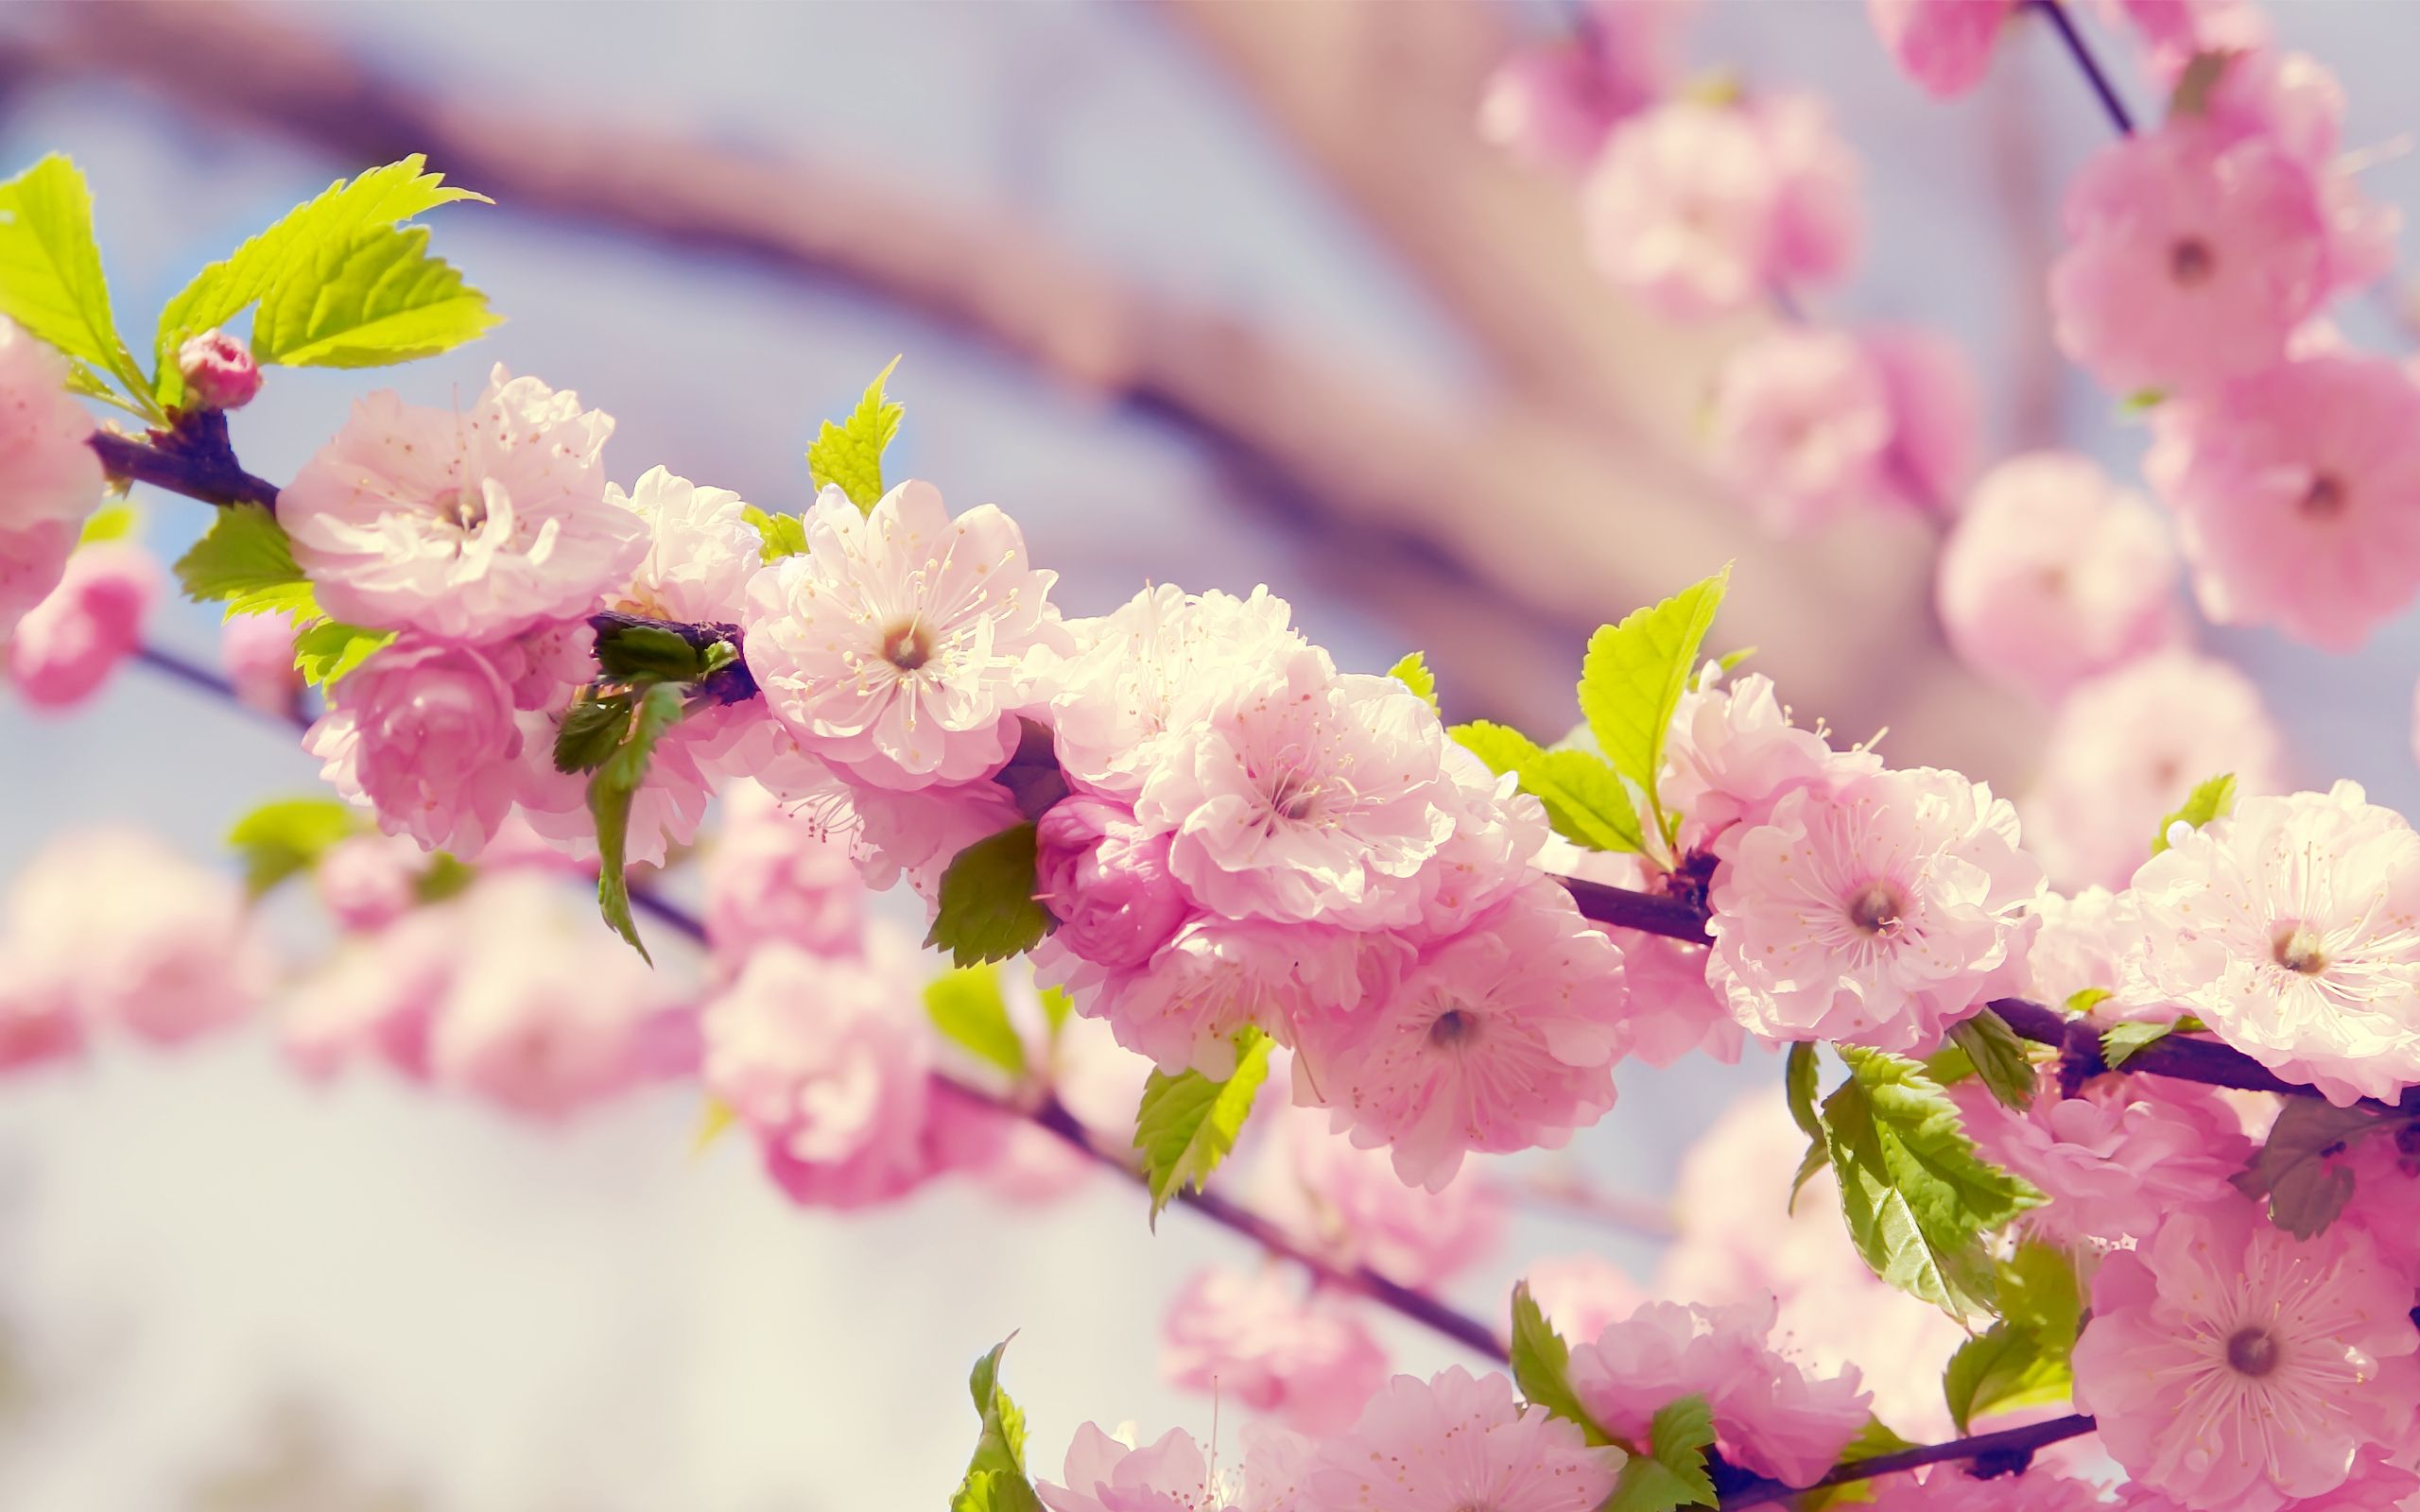 2560x1600 Pink Flower Wallpapers, 36 Pink Flower Images for Free (2MTX Pink ...